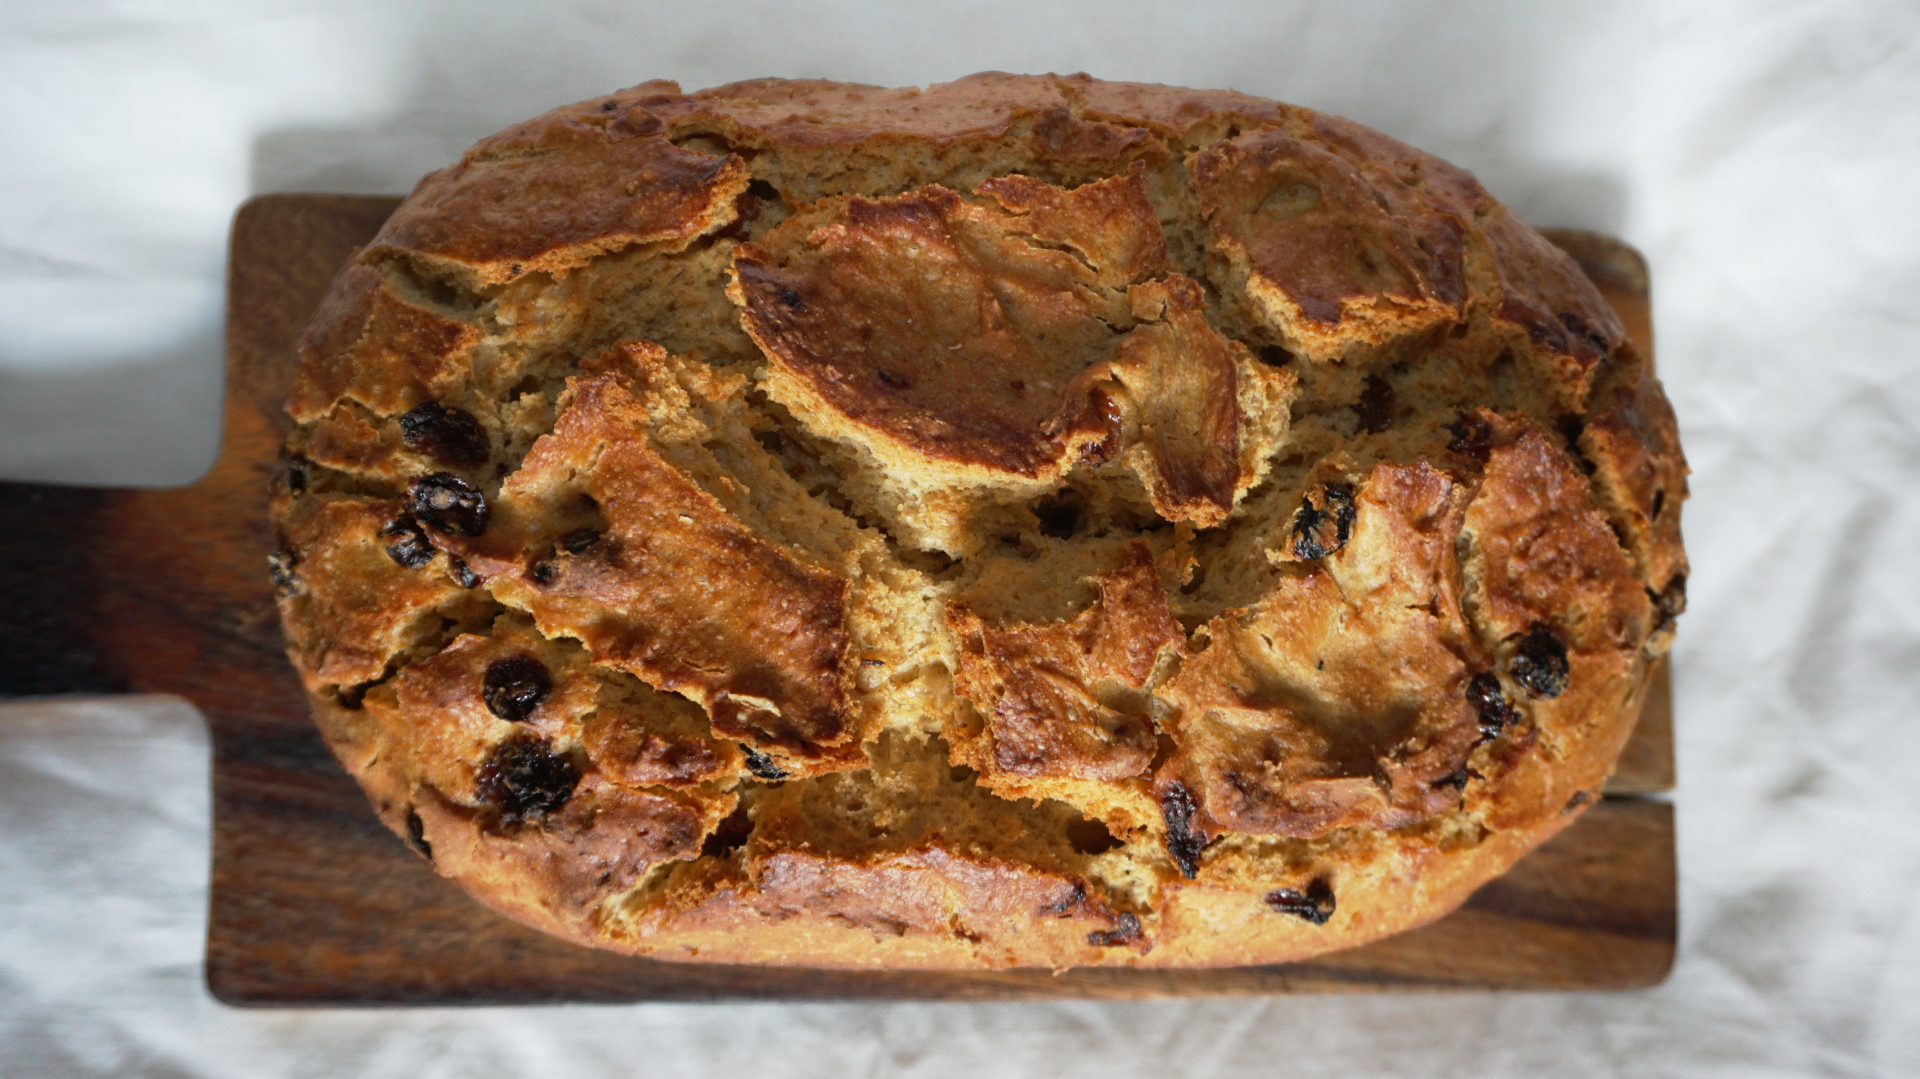 Bee Pollen Sourdough Bread with Raisins